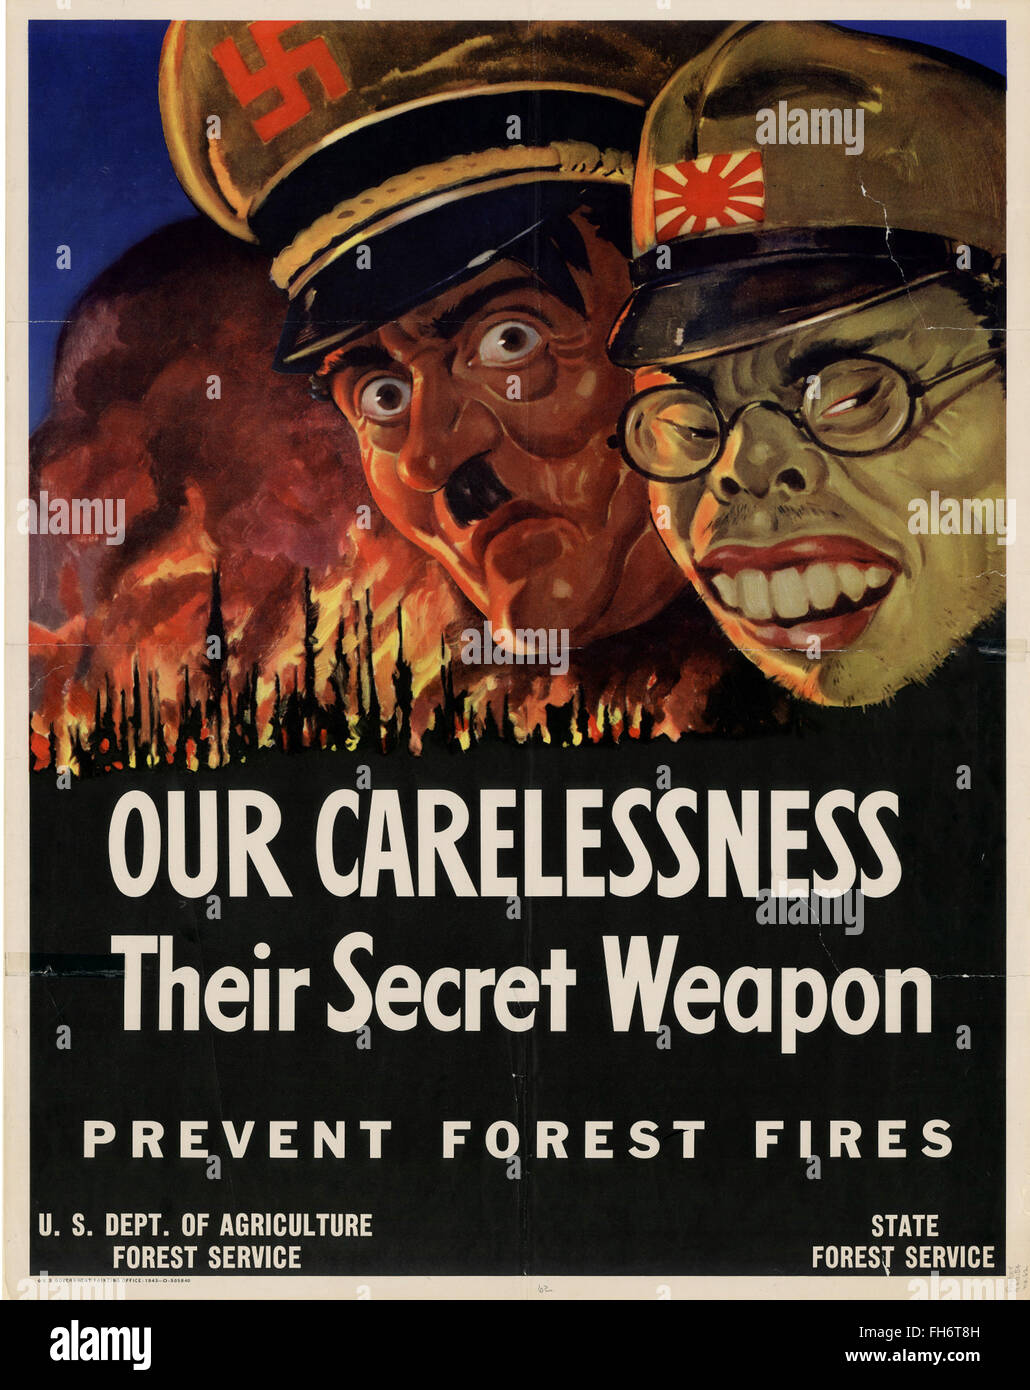 Our Carelessnes Their Secret Weapon - US Propaganda Poster - WWII - Stock Image